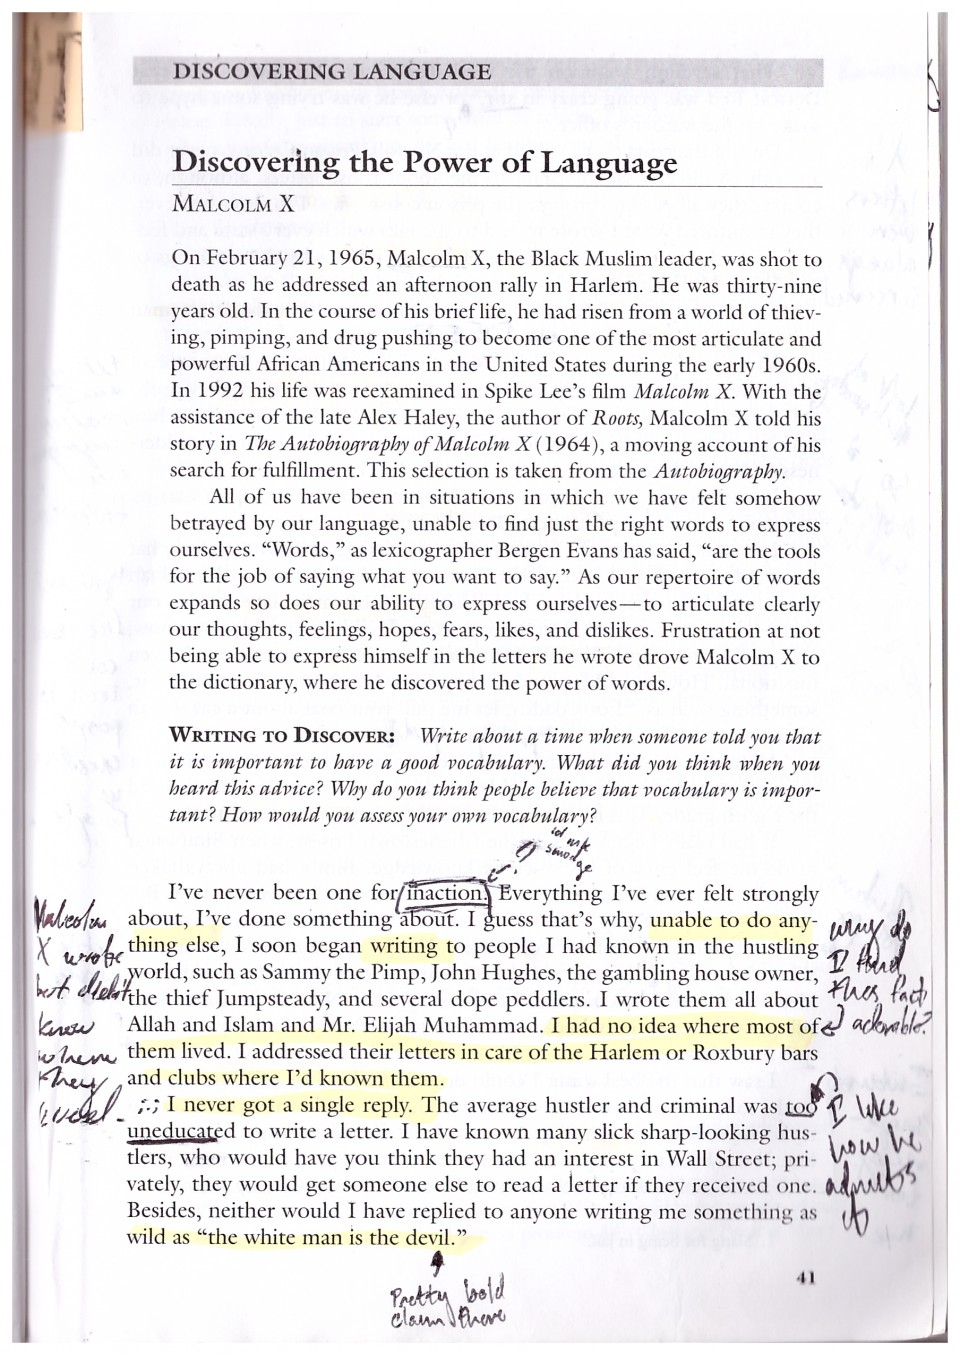 002 Malcolm X Essay Example Page Stunning Learning To Read Questions Summary 960